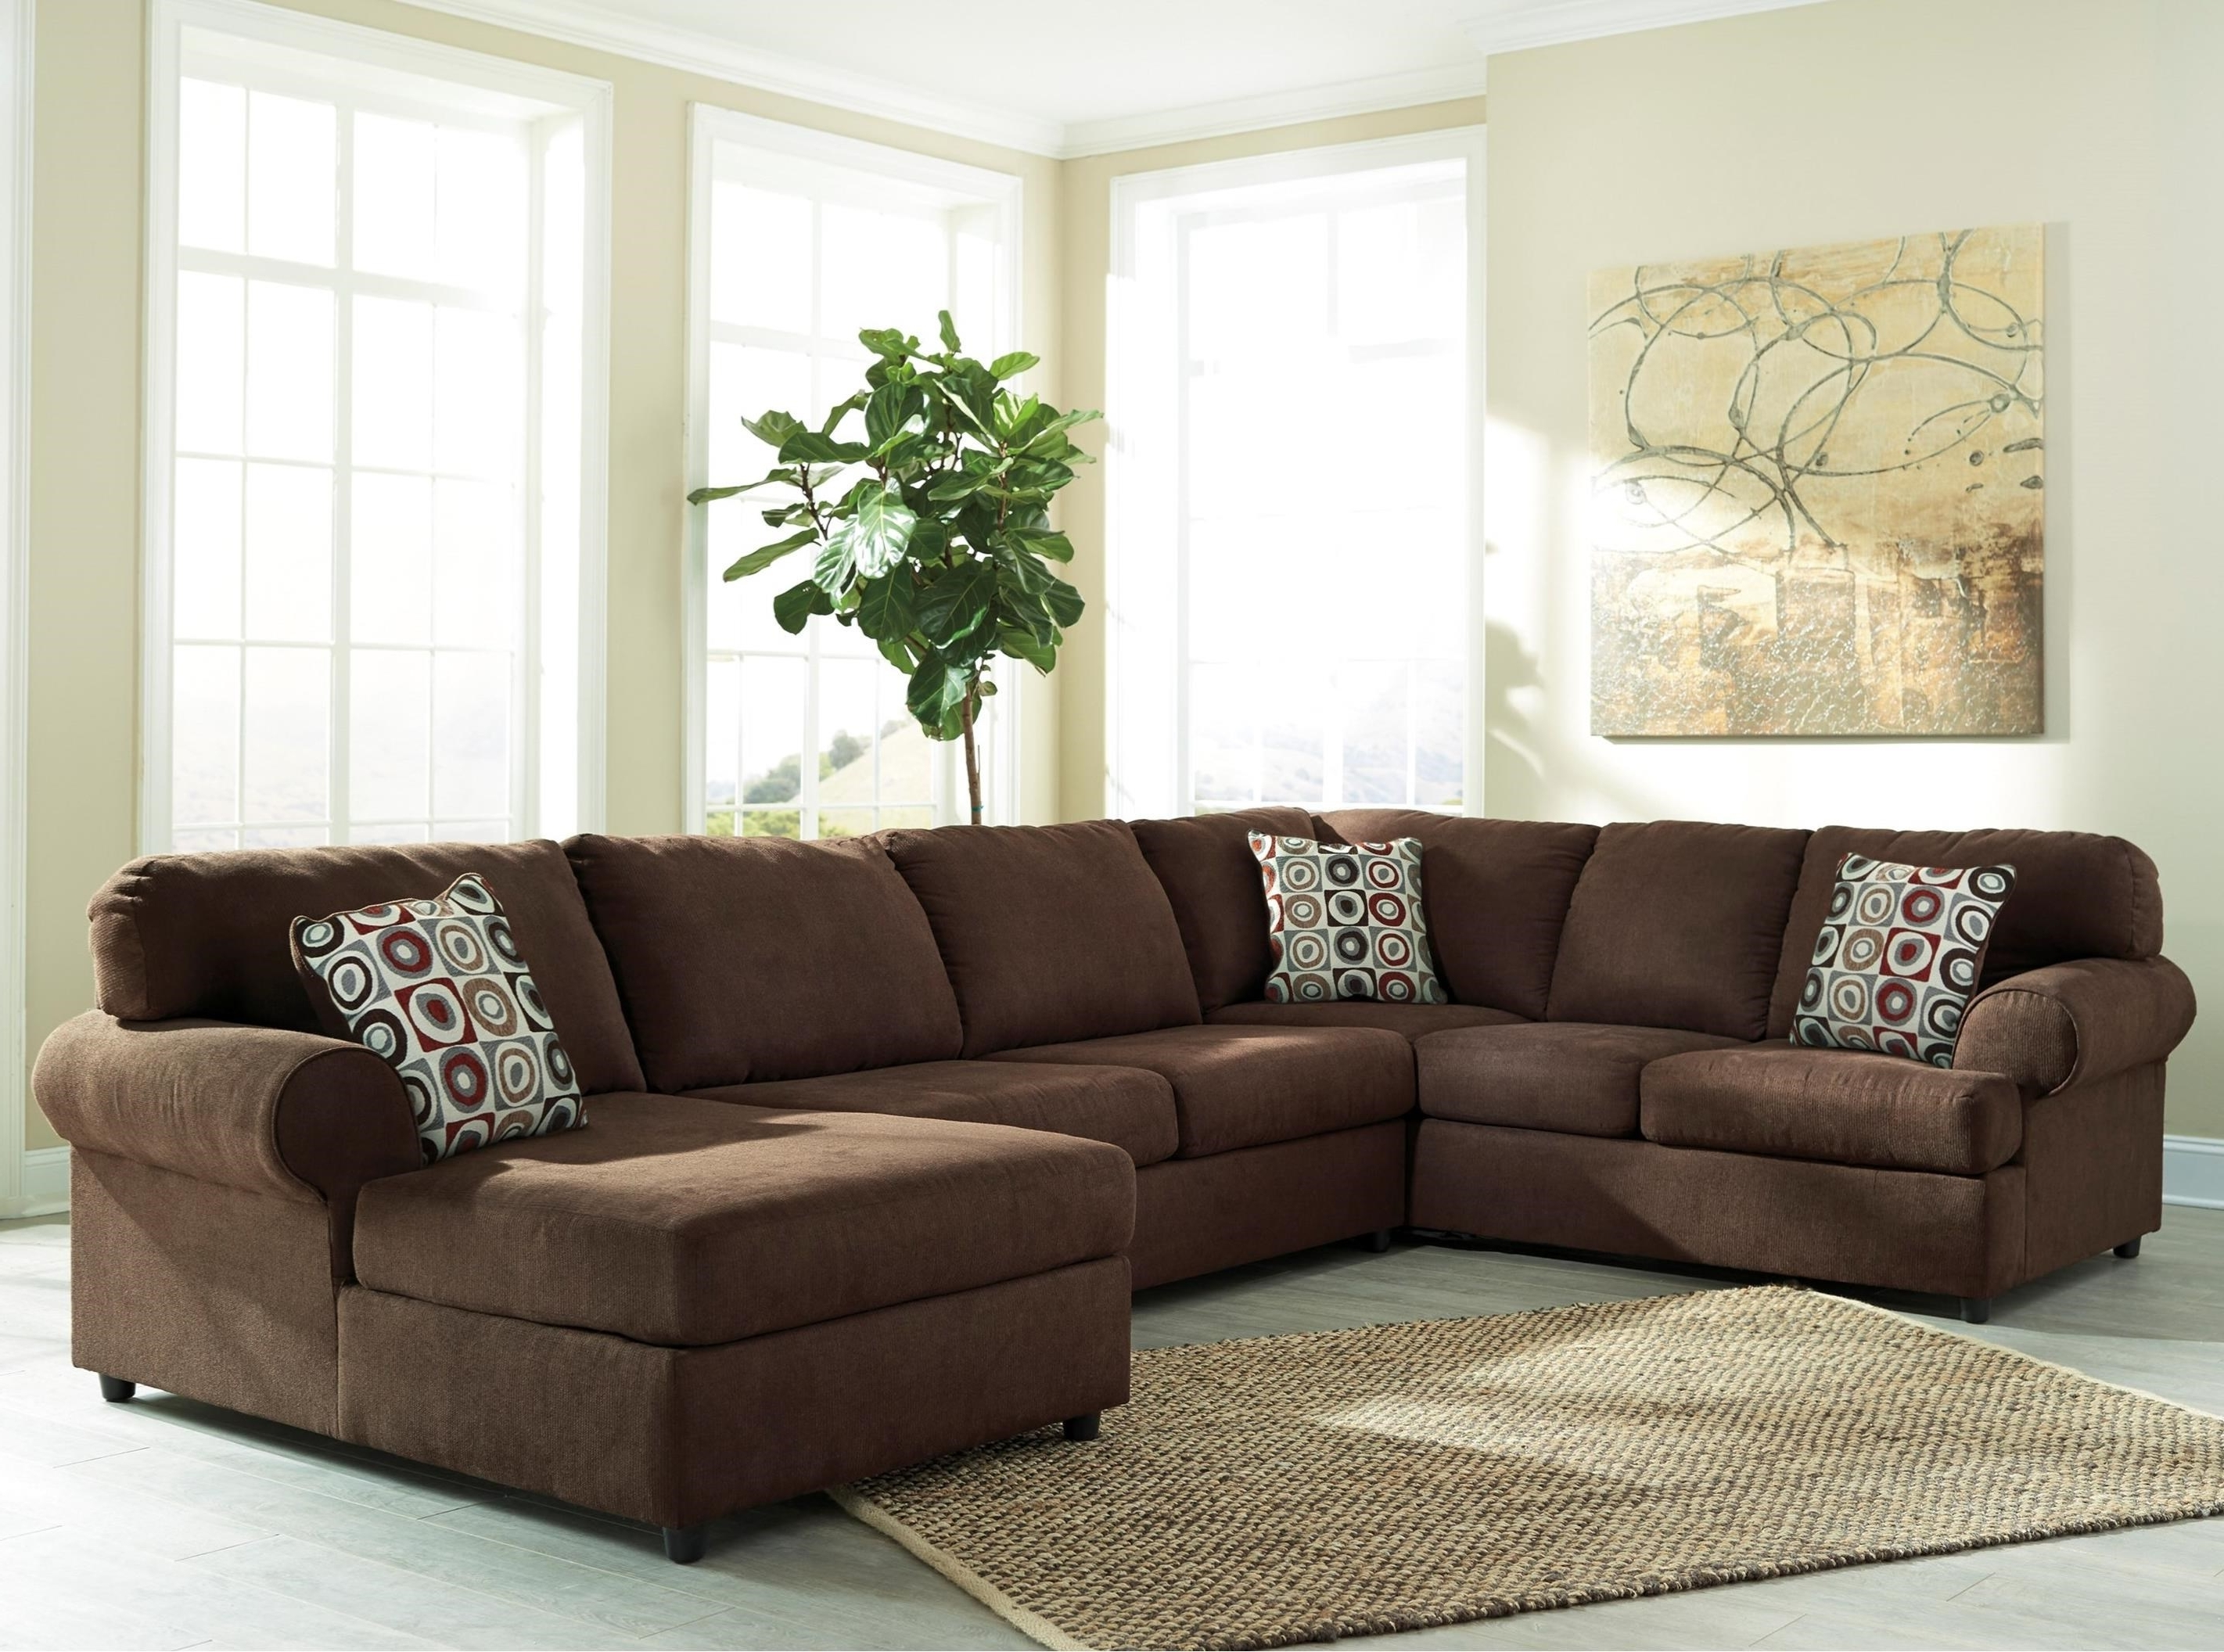 Well Known Signature Designashley Jayceon 3 Piece Sectional With Right With 3 Piece Sectionals With Chaise (View 15 of 15)